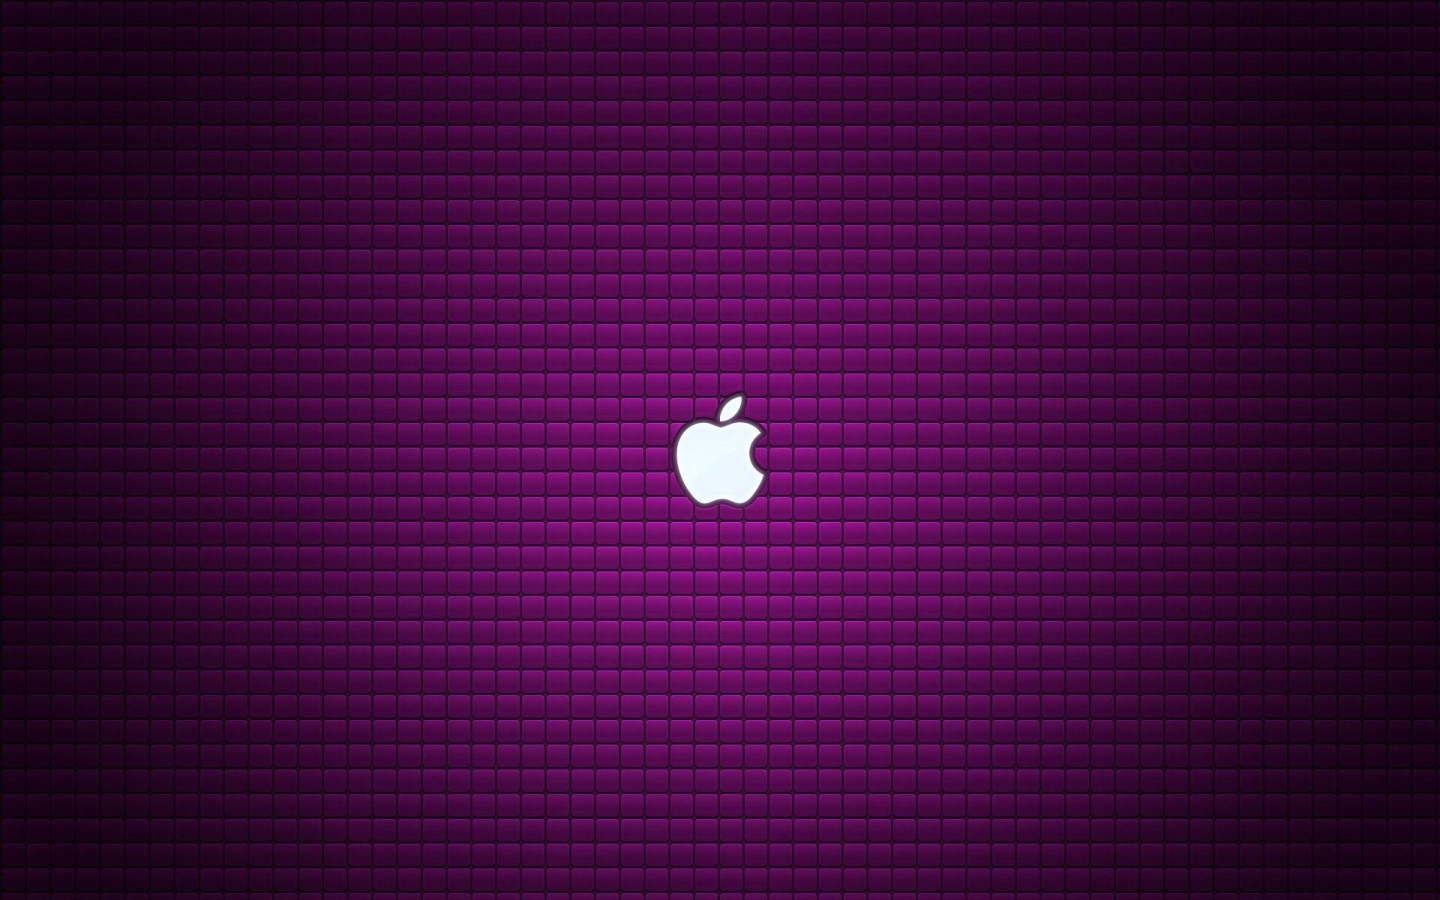 fabulous hd pro wallpaper te apple macbook pro k hd wallpapers hd